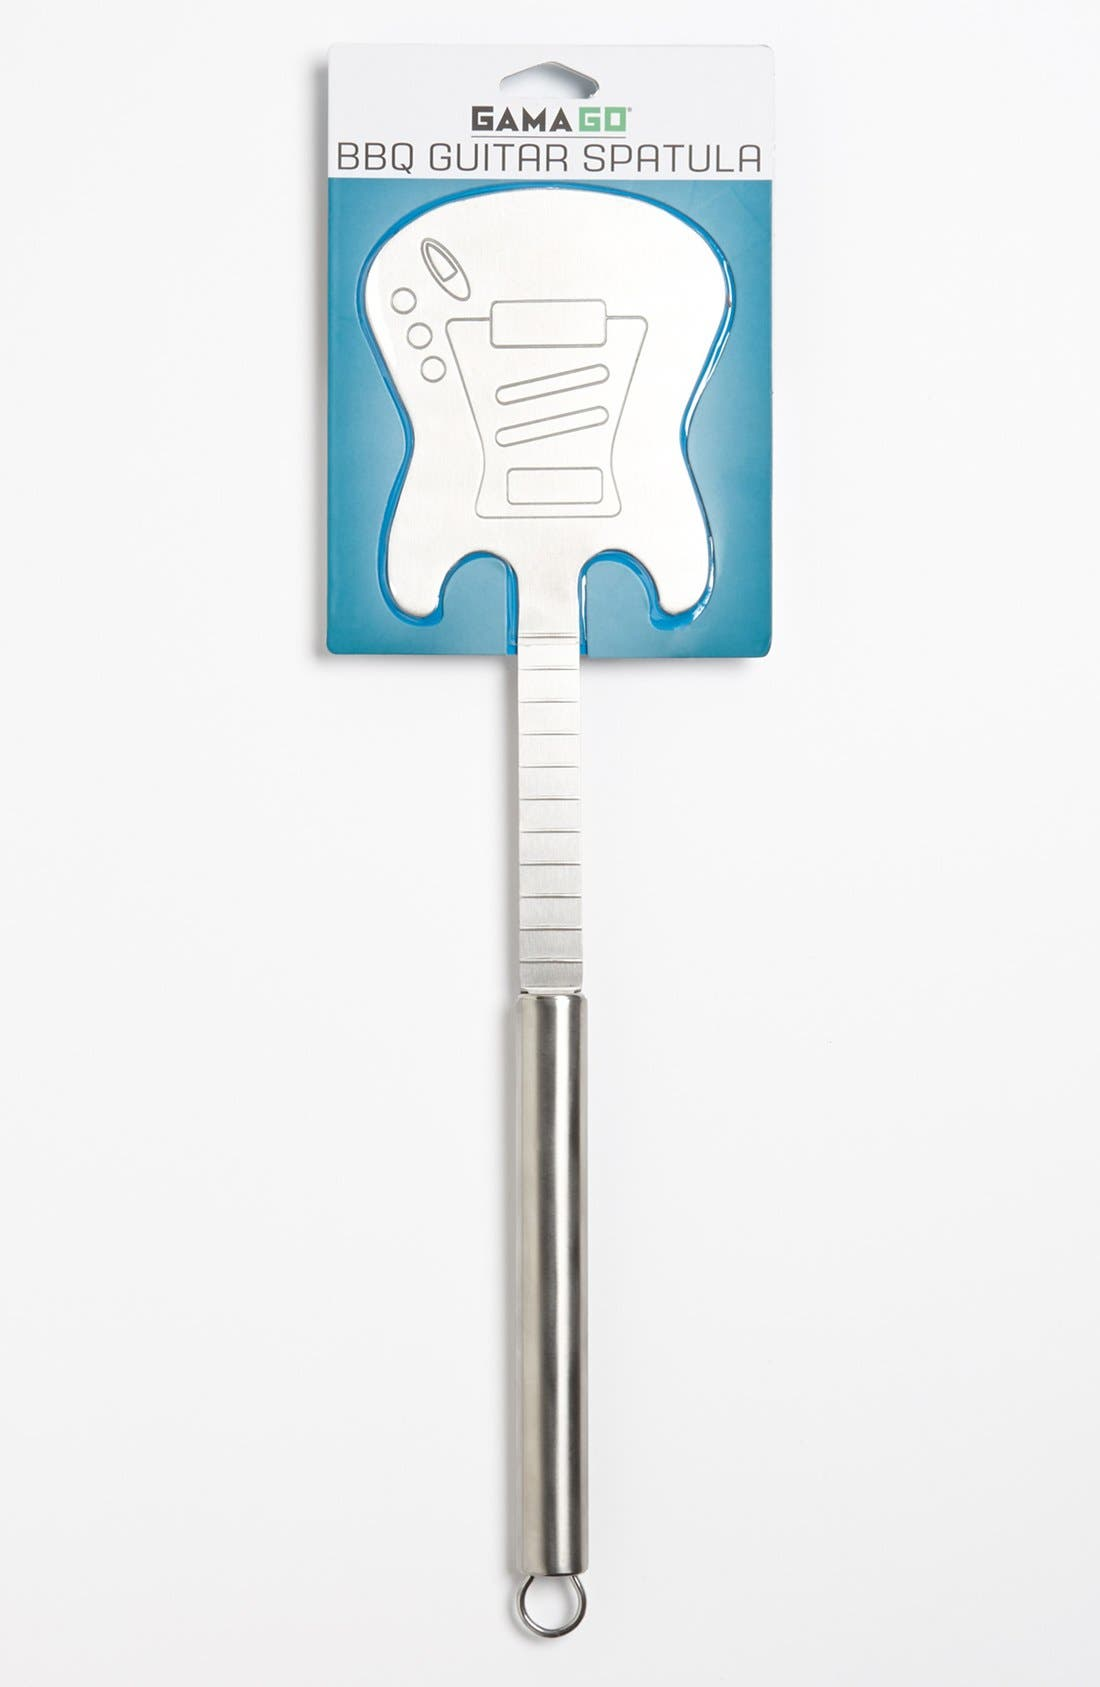 Main Image - GAMAGO 'Guitar' Stainless Steel BBQ Spatula